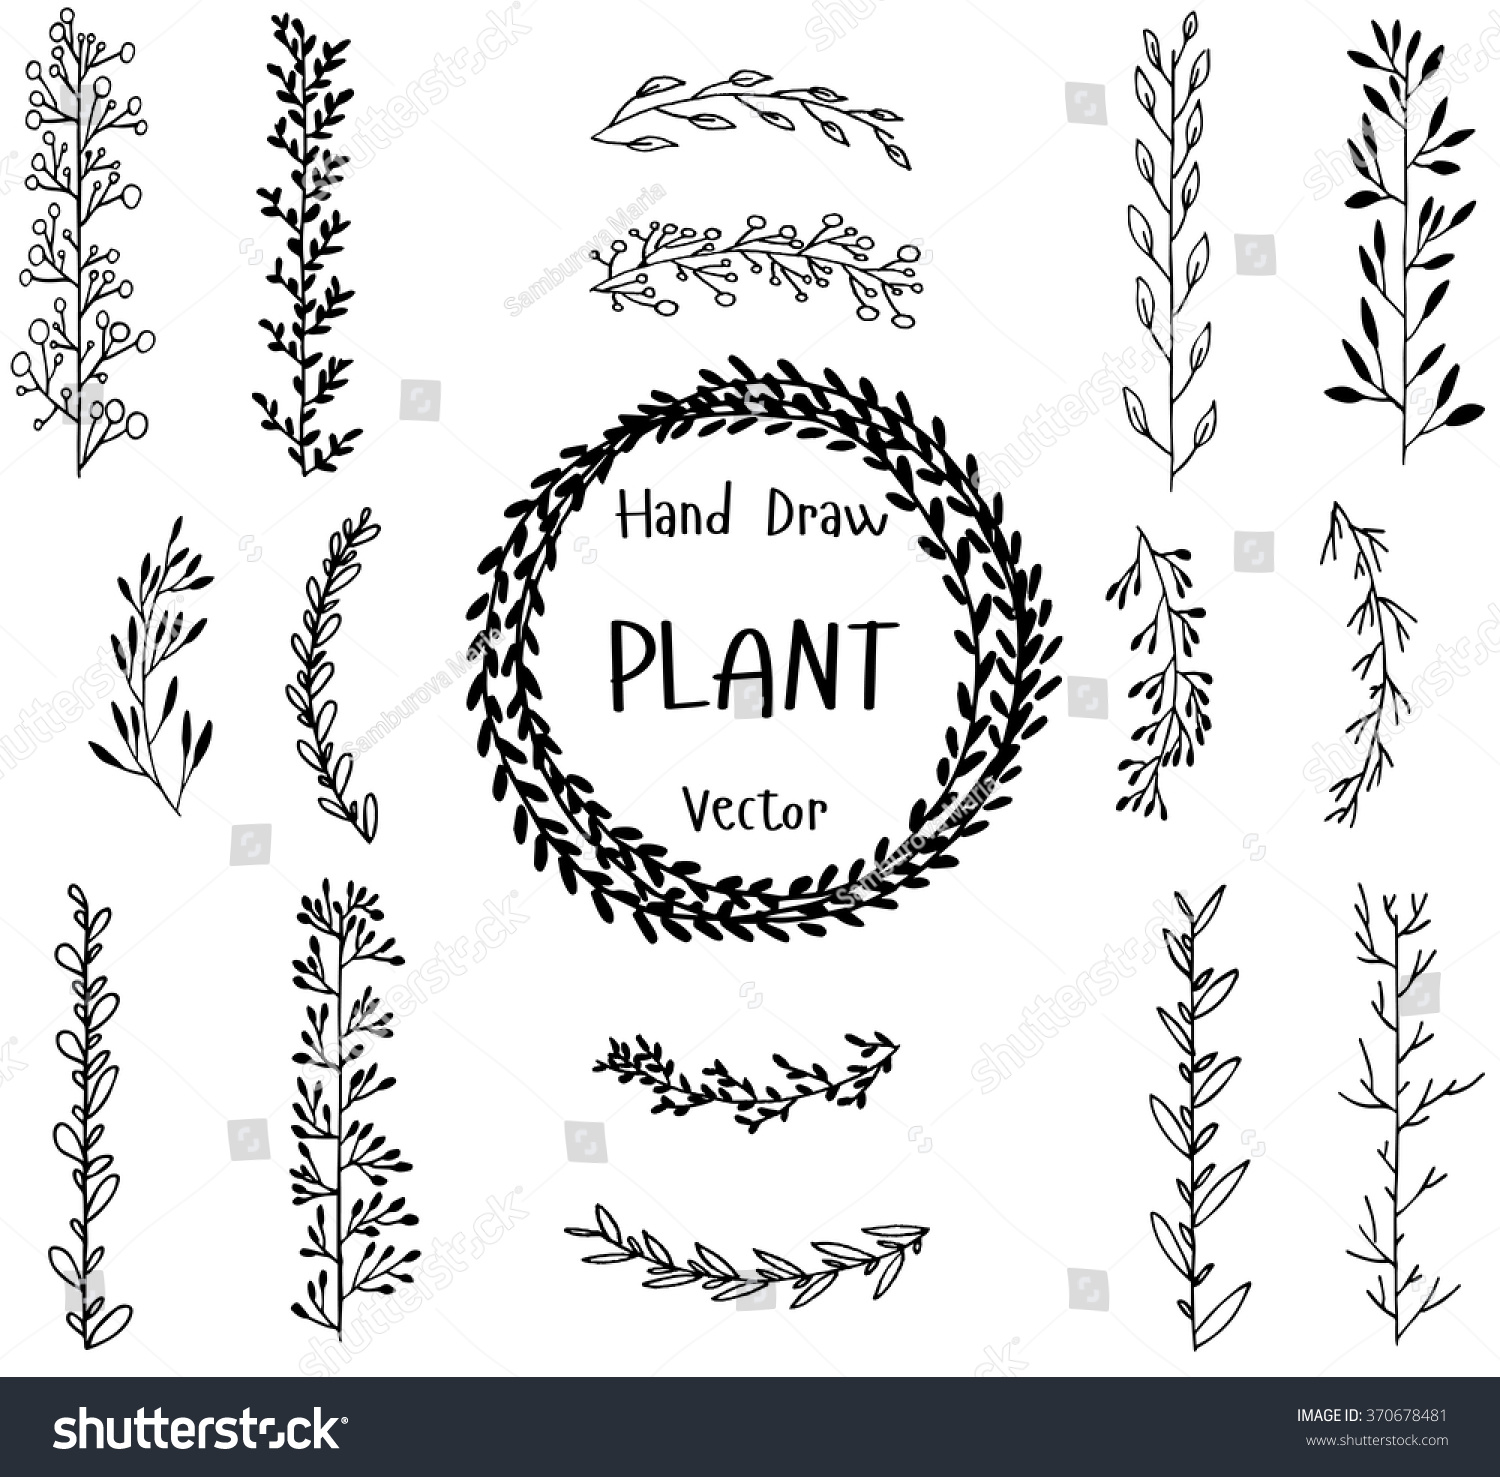 Set hand drawn plant illustration ink stock vector royalty free illustration ink graphics isolated plants natural stopboris Gallery